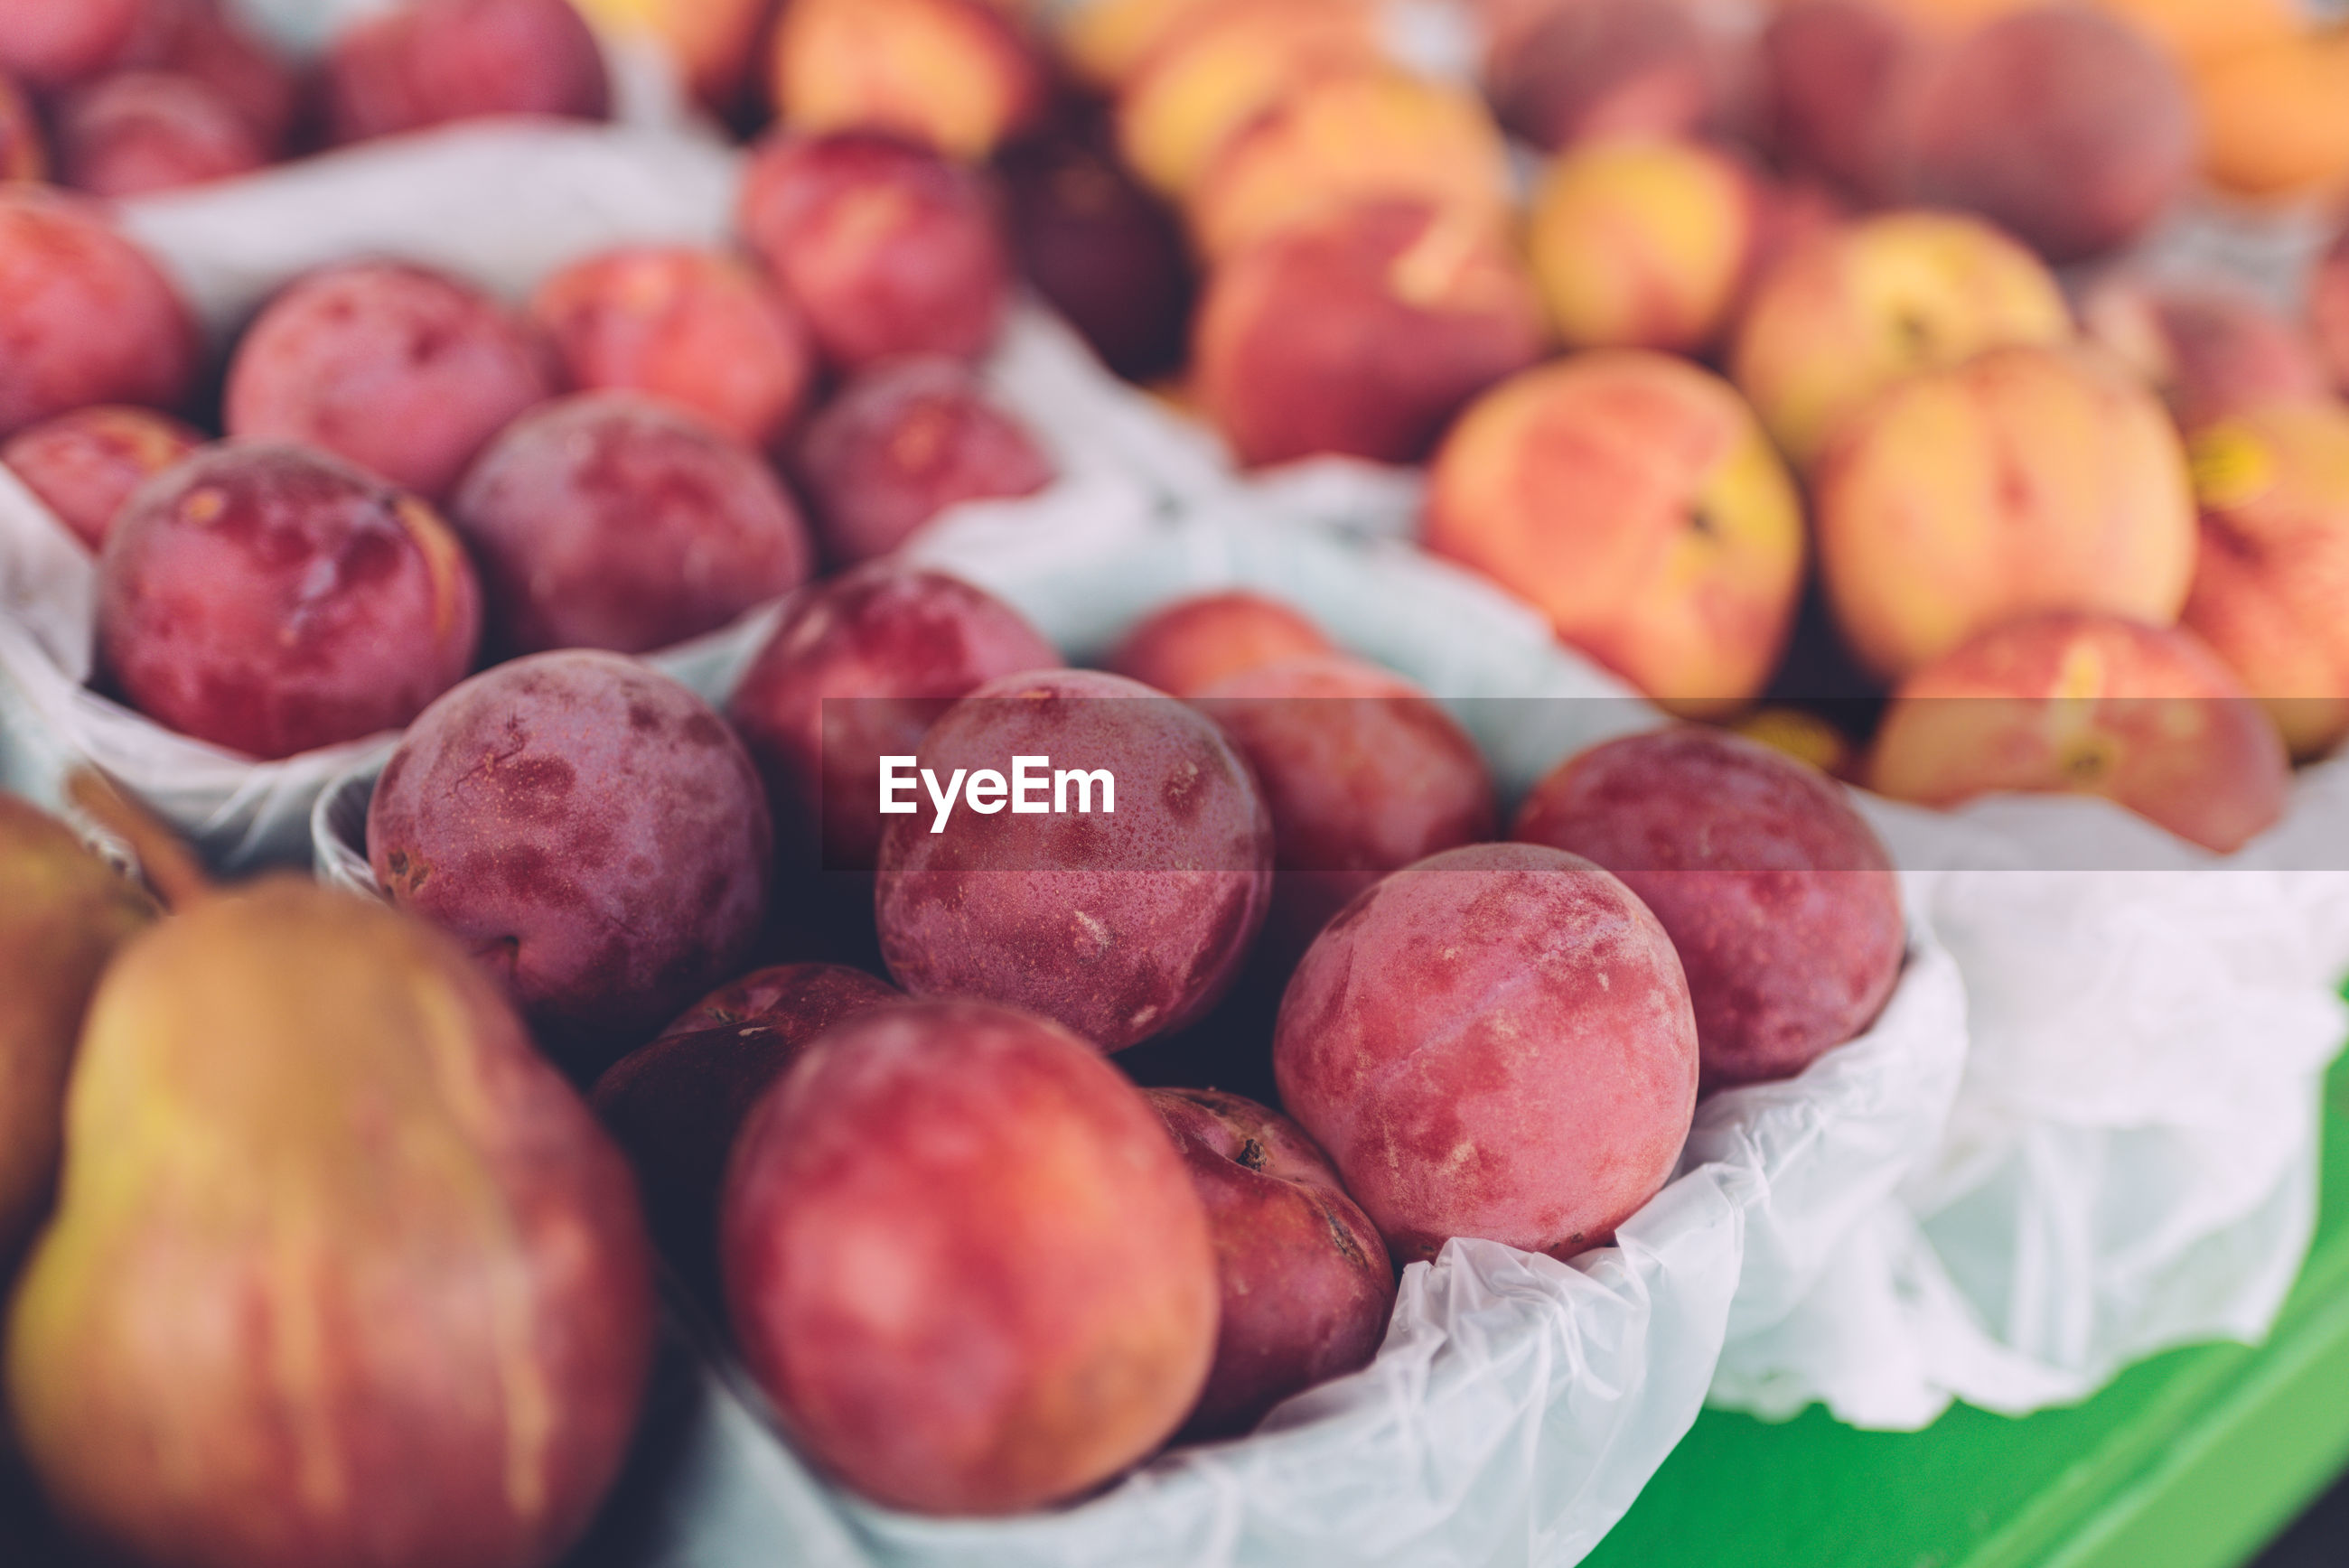 Close-up of plums for sale at market stall